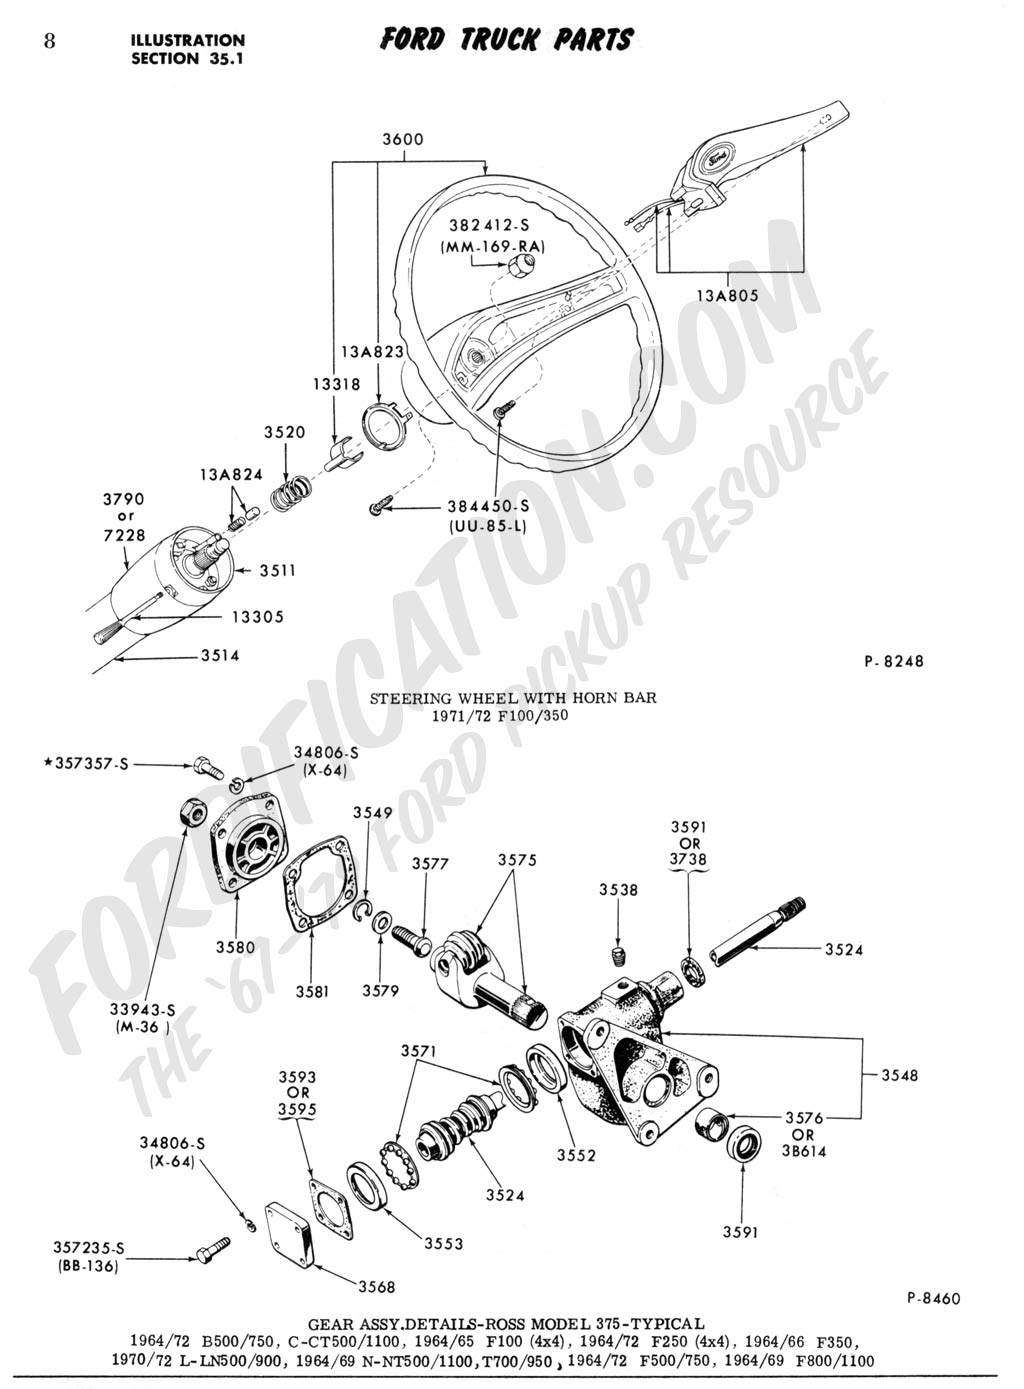 Ford F100 Wiper Switch Wiring Diagram Moreover 65 Mustang